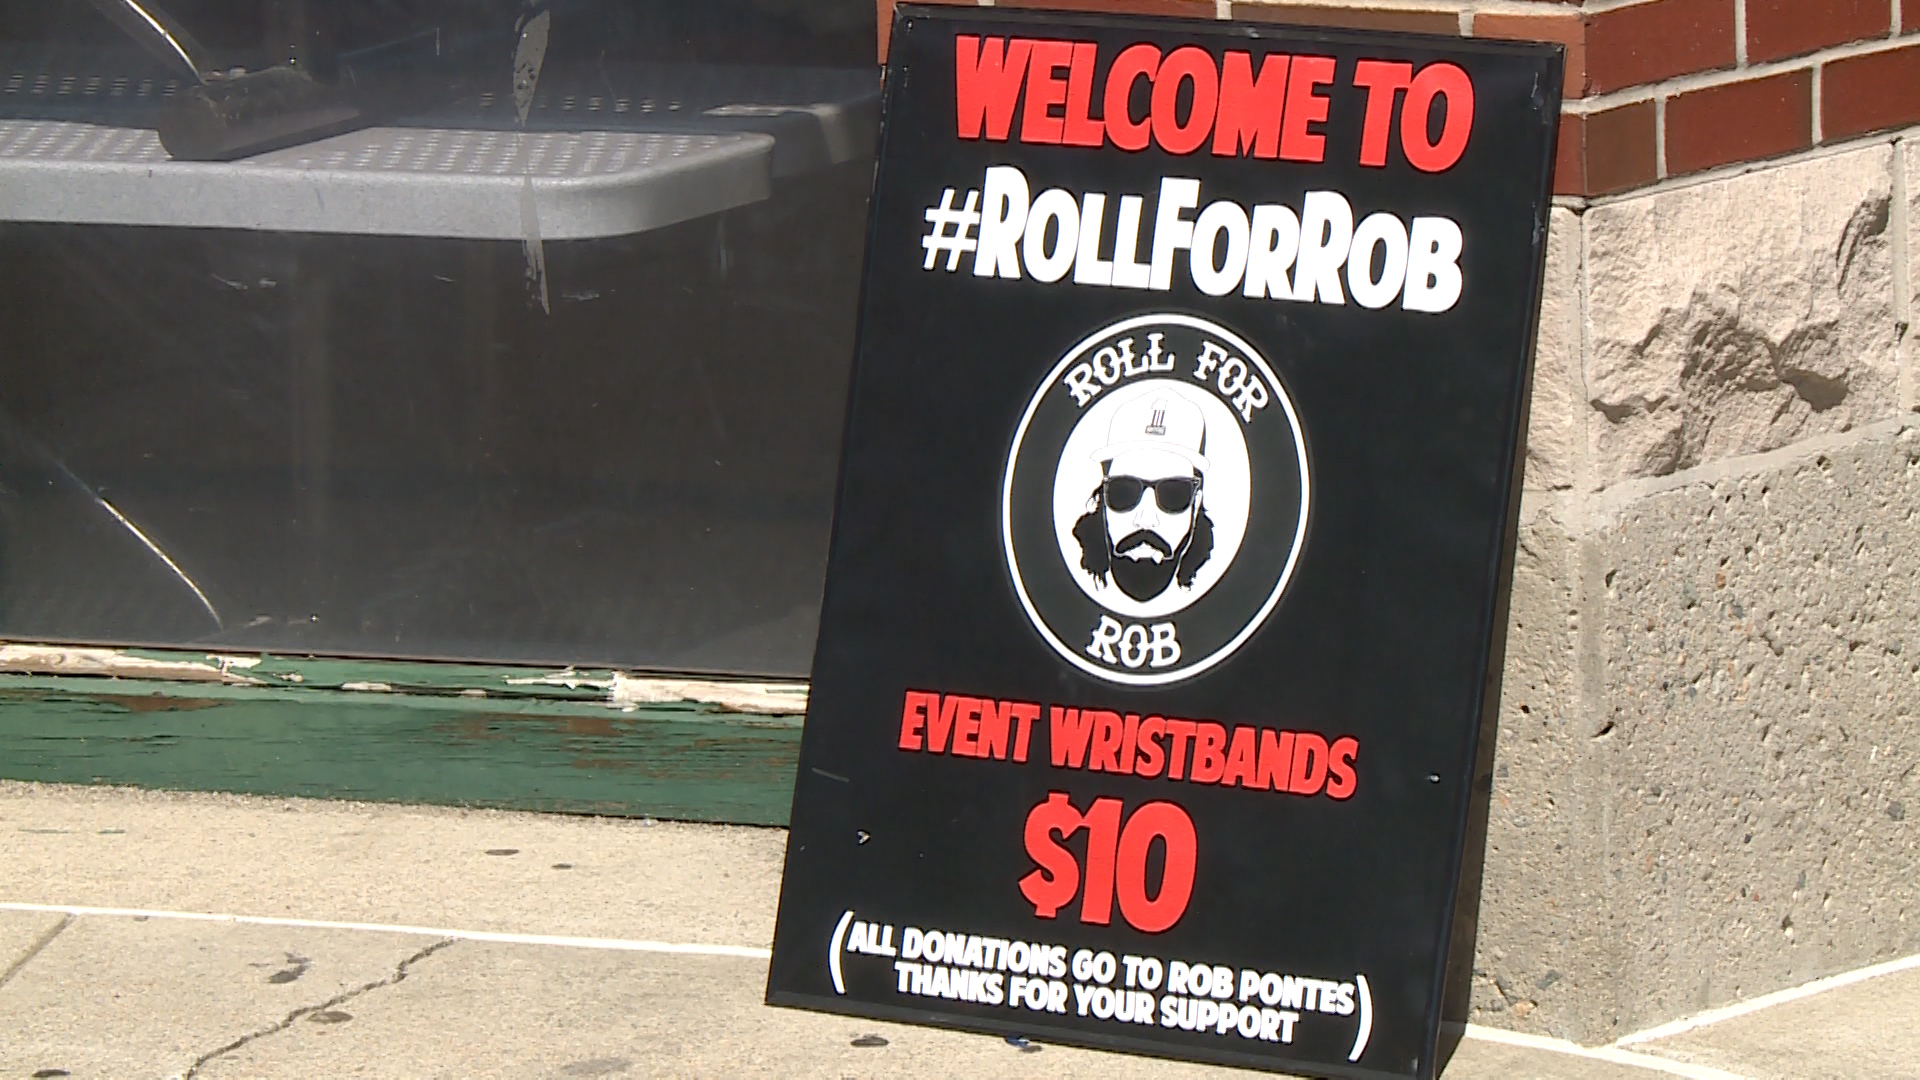 Roll for Rob